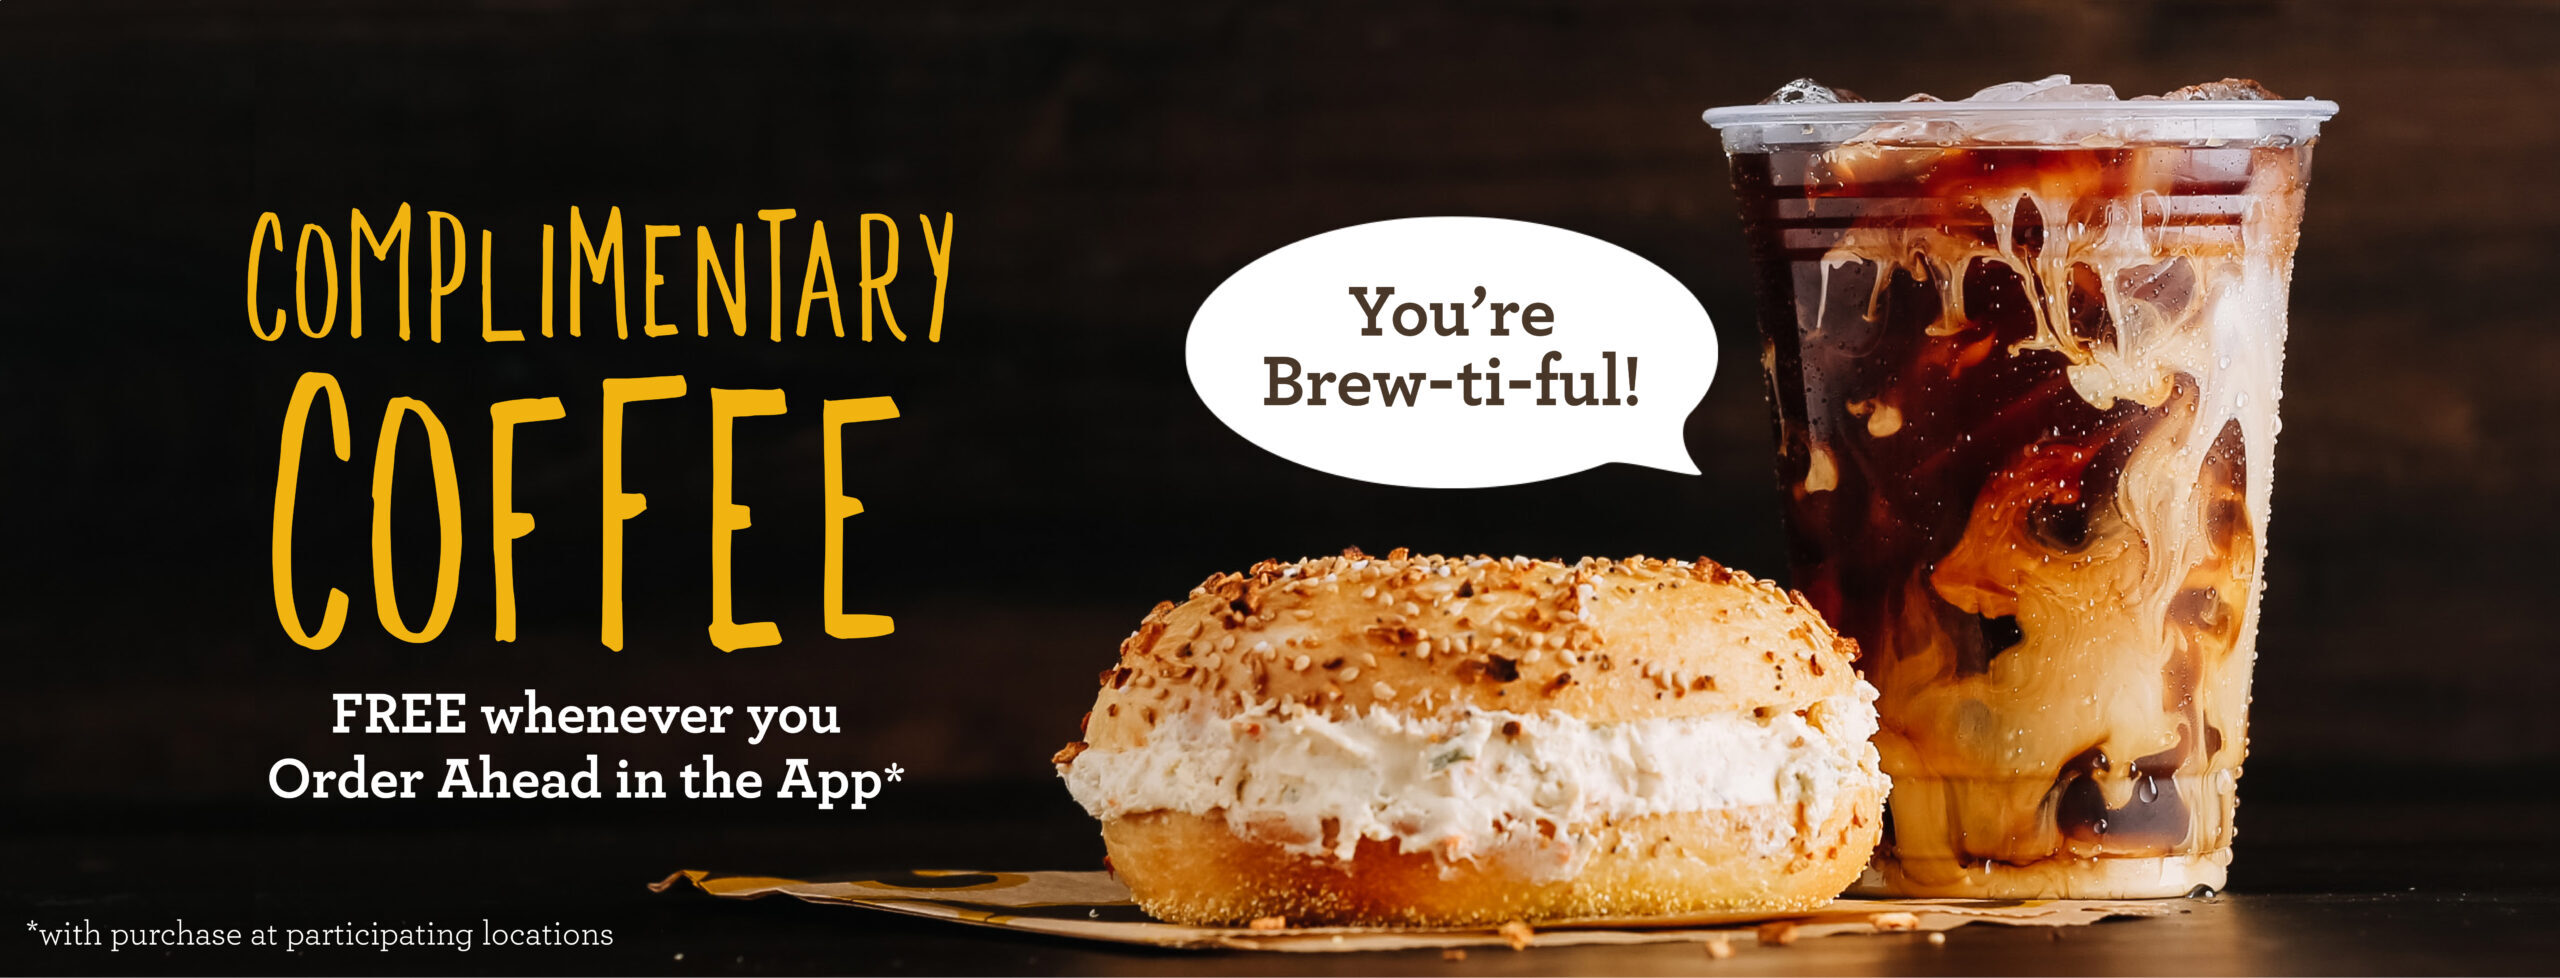 Complimentary Coffee – Free when you order ahead in the mobile app!